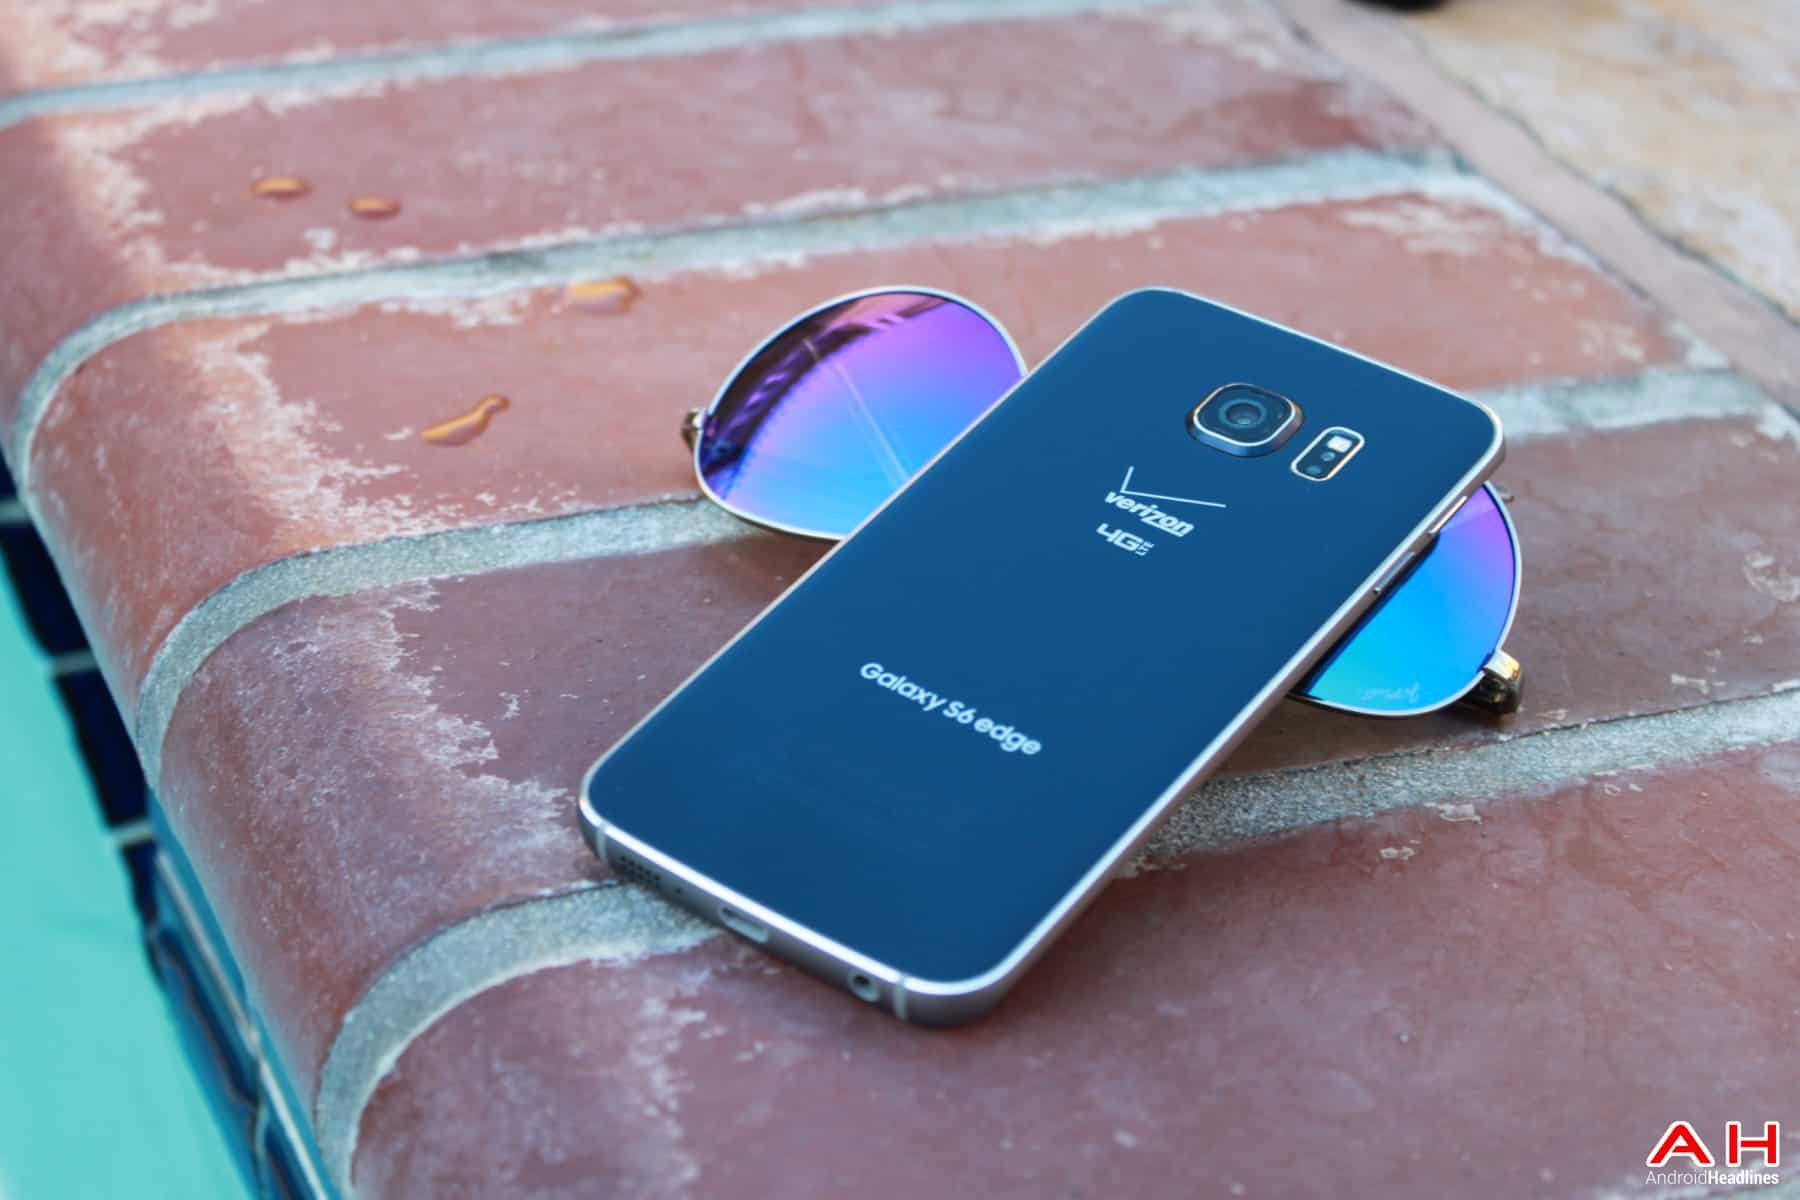 AH Samsung Galaxy S6 Edge Series 4 June 30th 37